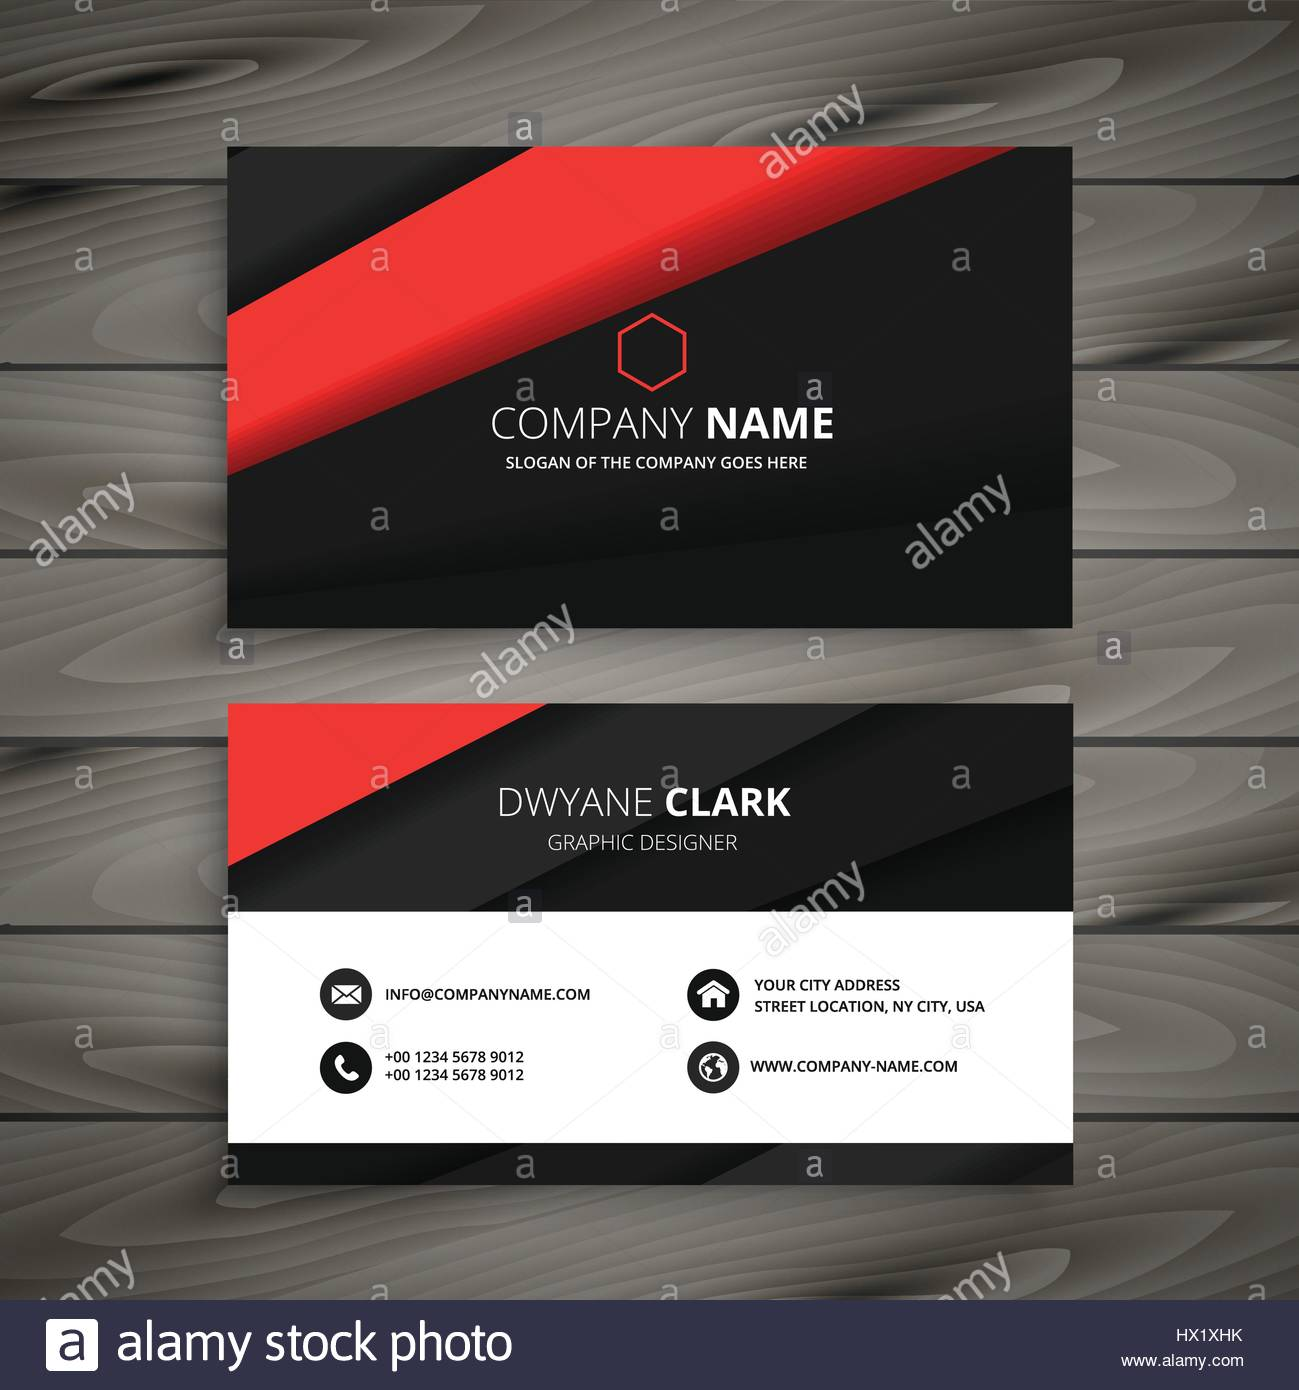 Minimal red black business card template vector design illustration minimal red black business card template vector design illustration colourmoves